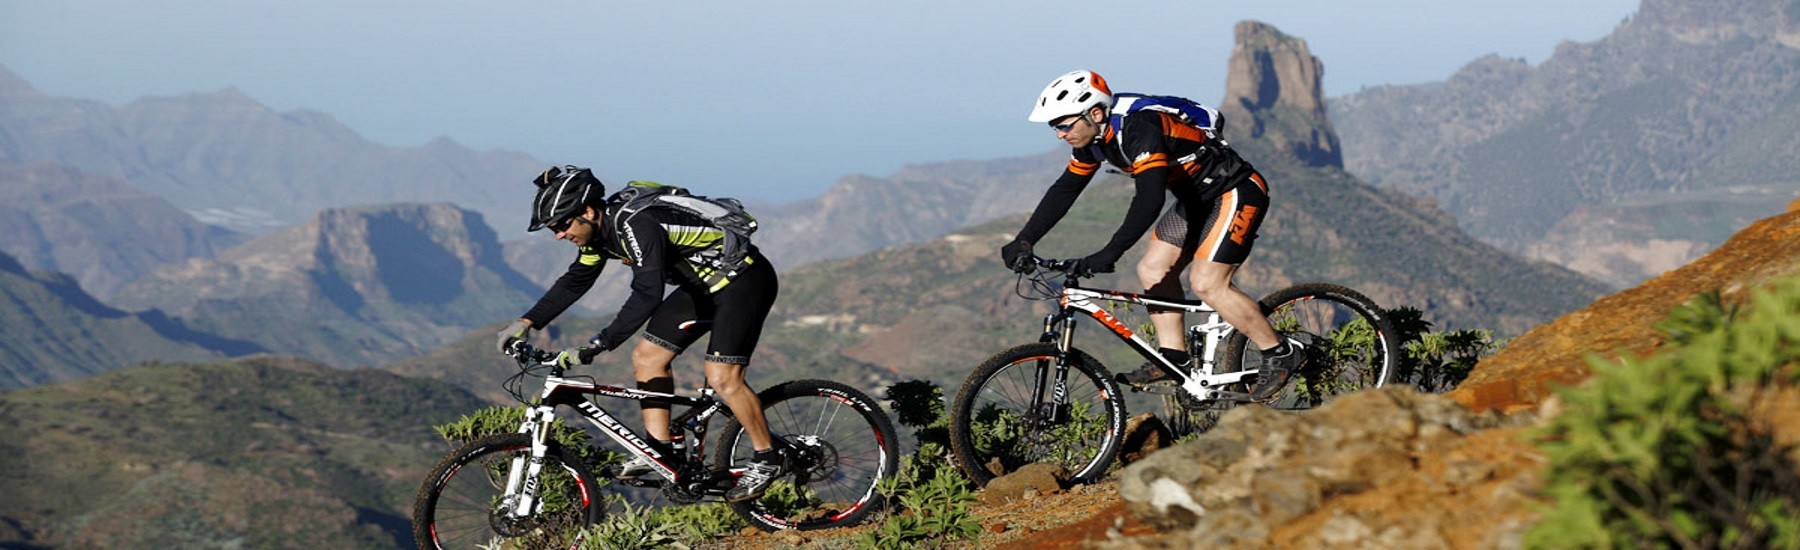 Mountain Biking in Gran Canaria